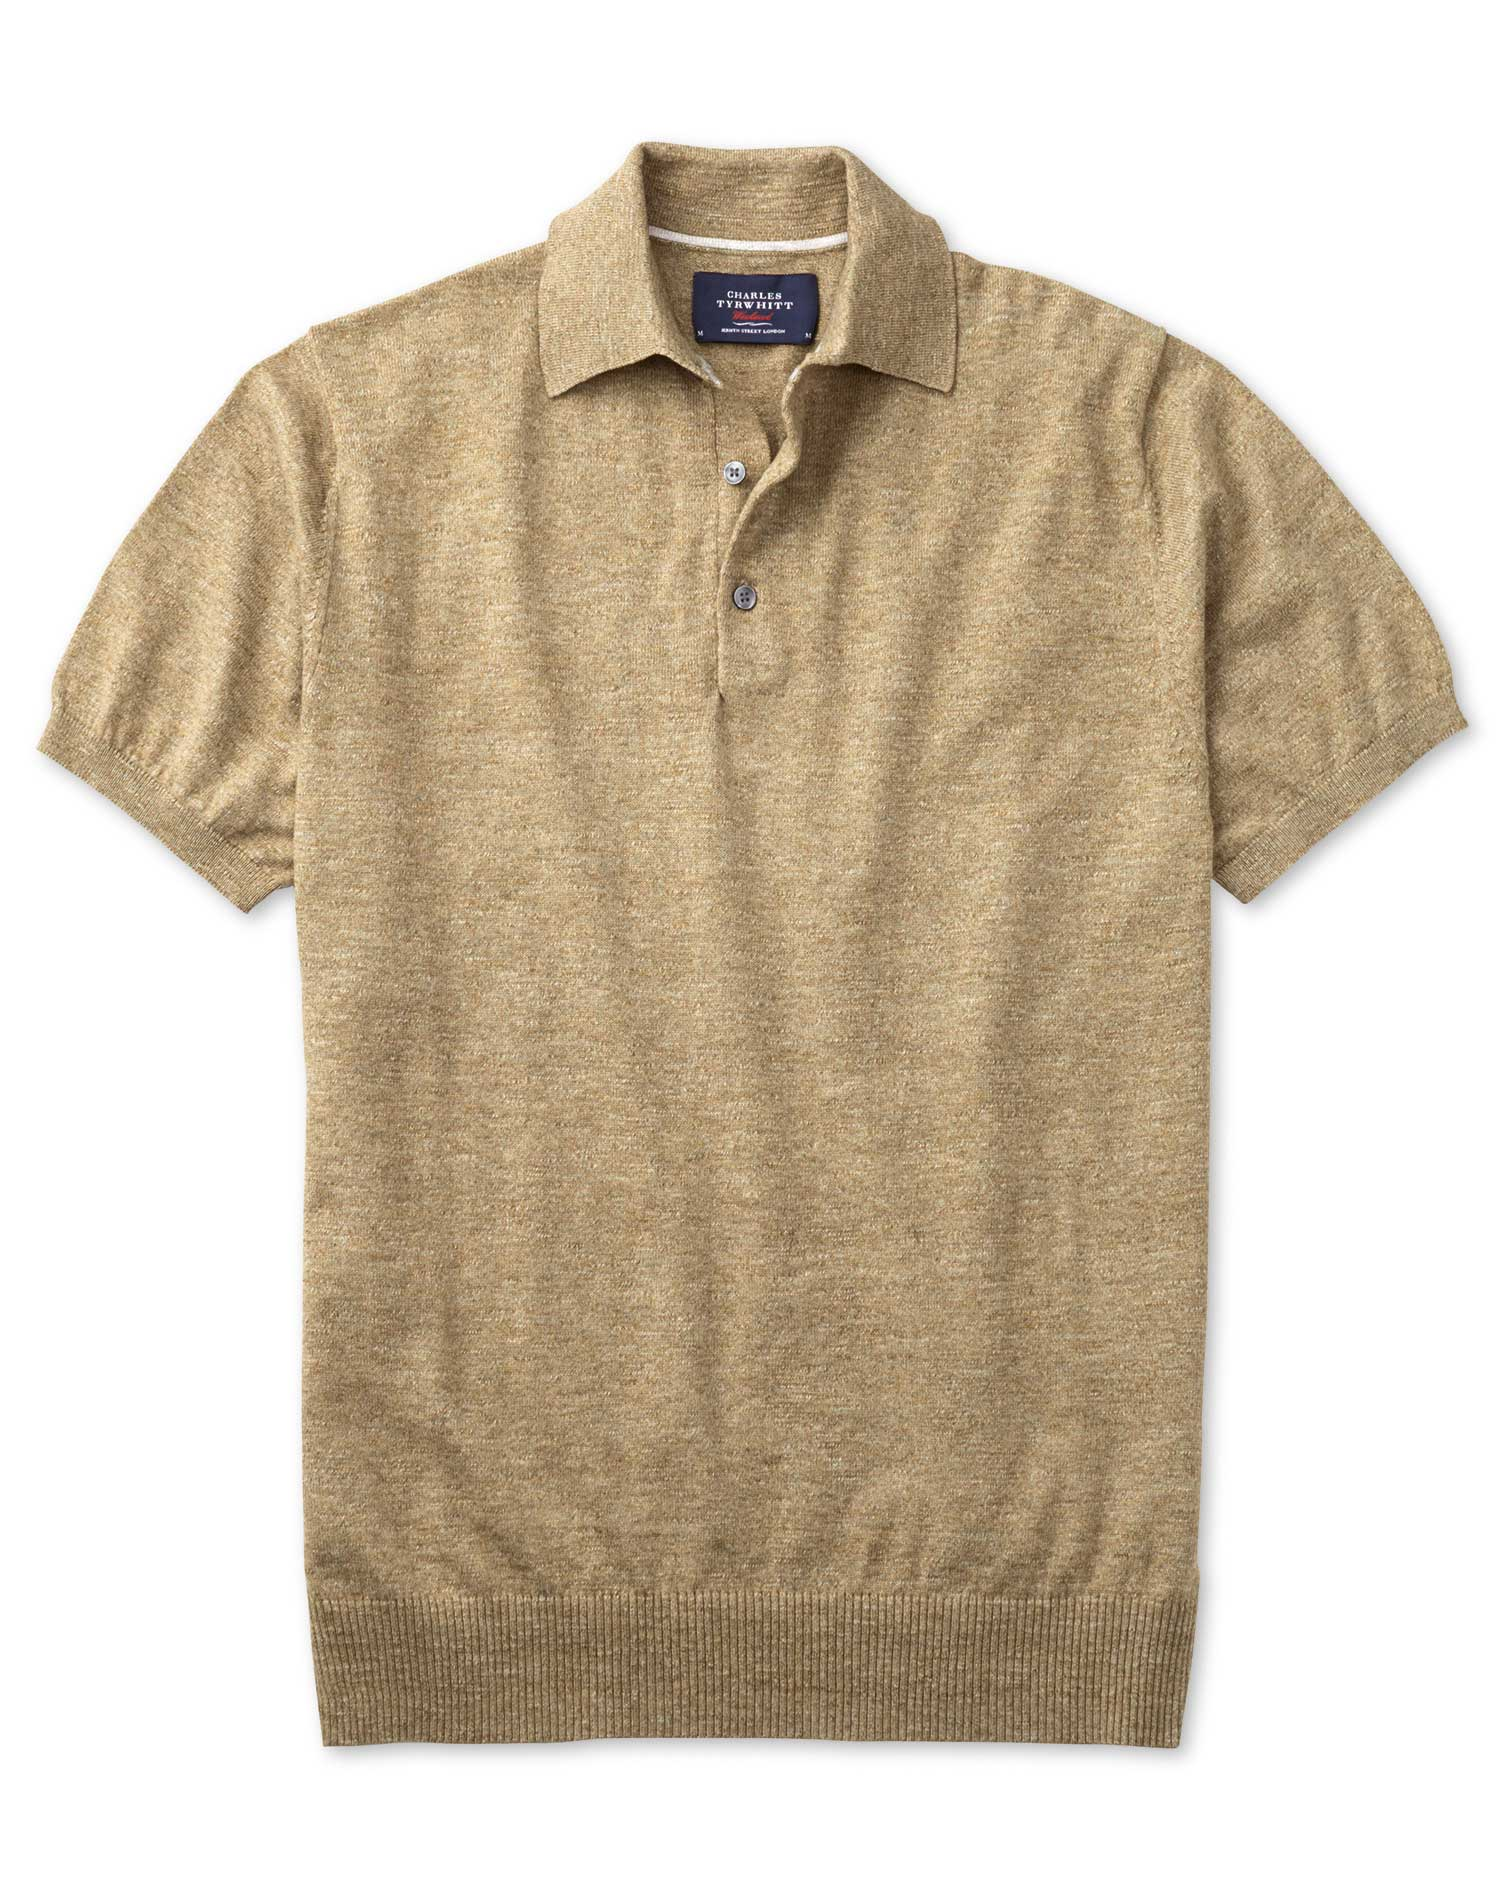 Fawn Heather Short Sleeve Cotton Polo Collar Cotton Jumper Size XS by Charles Tyrwhitt